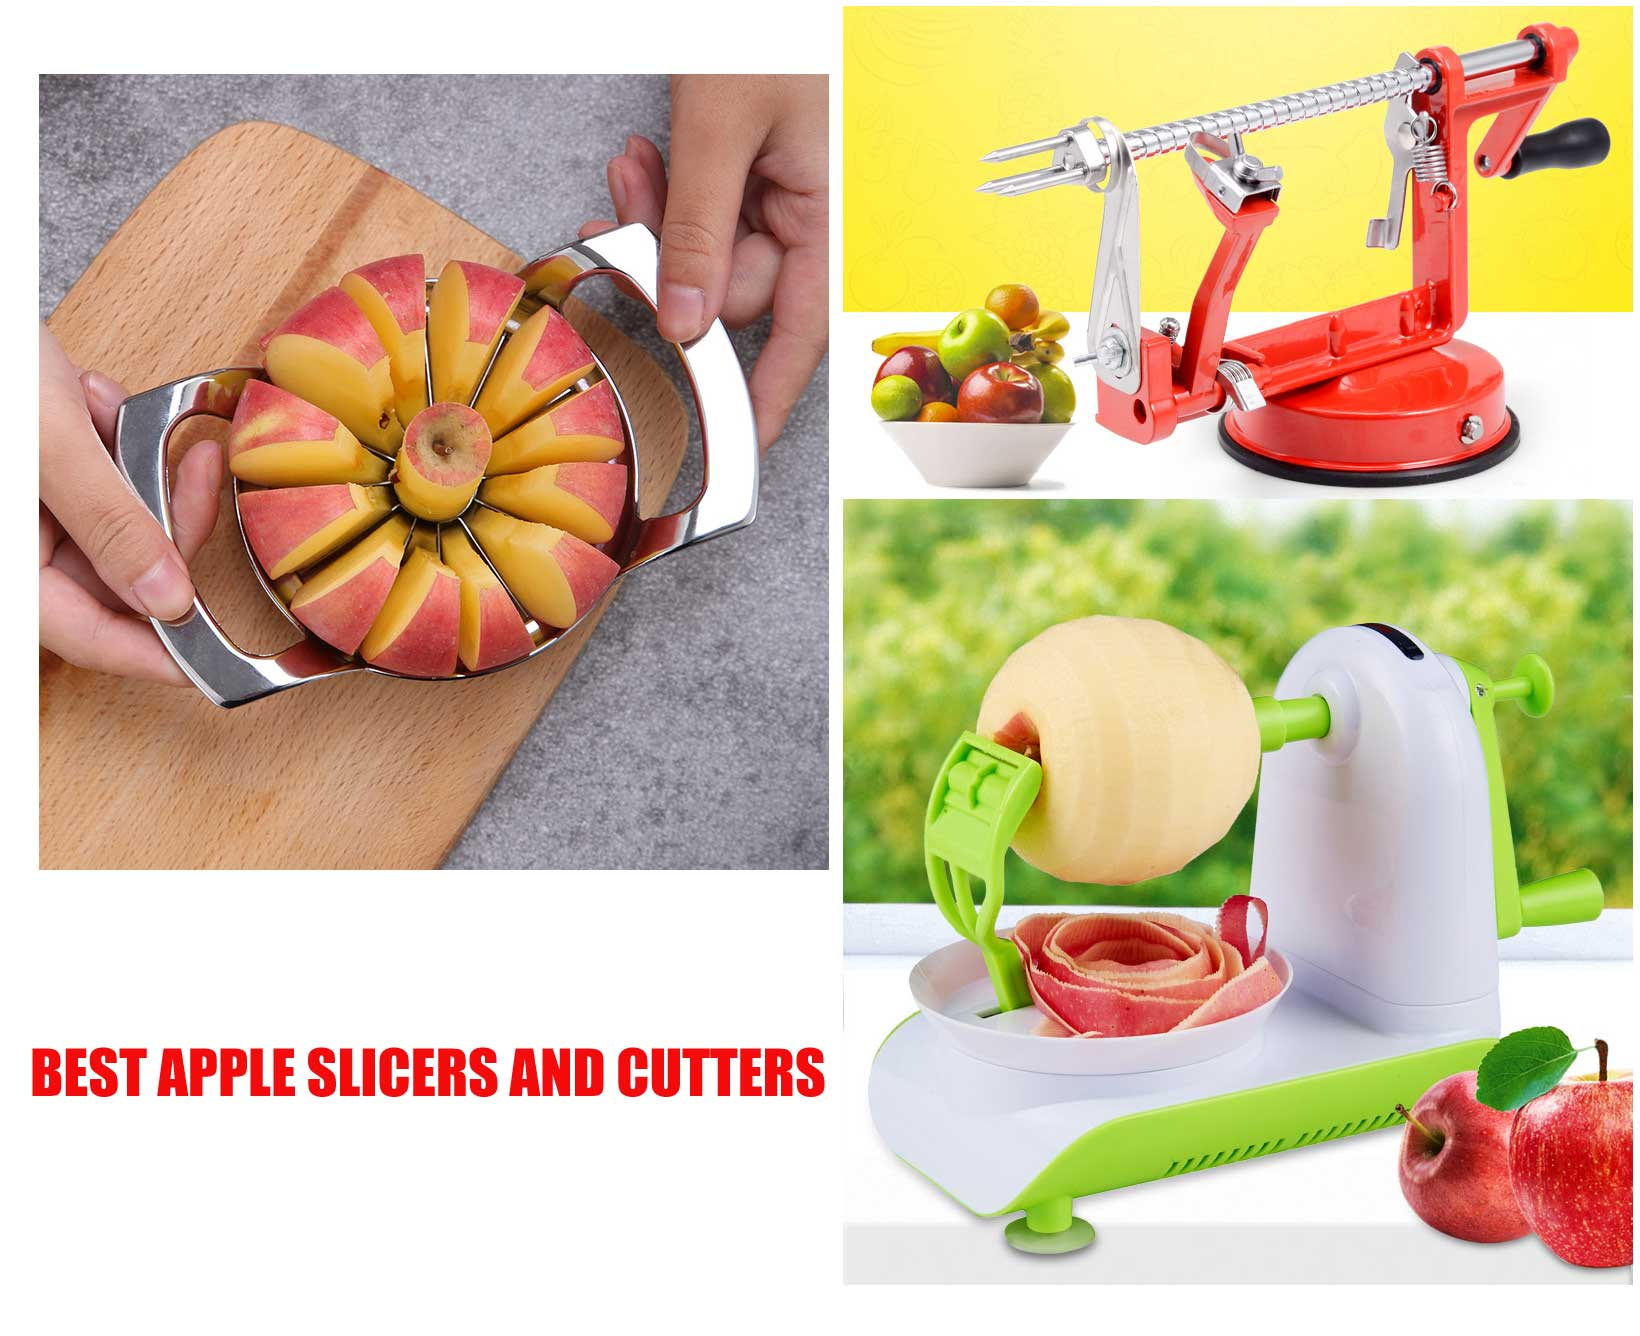 Best Apple Slicers and cutters